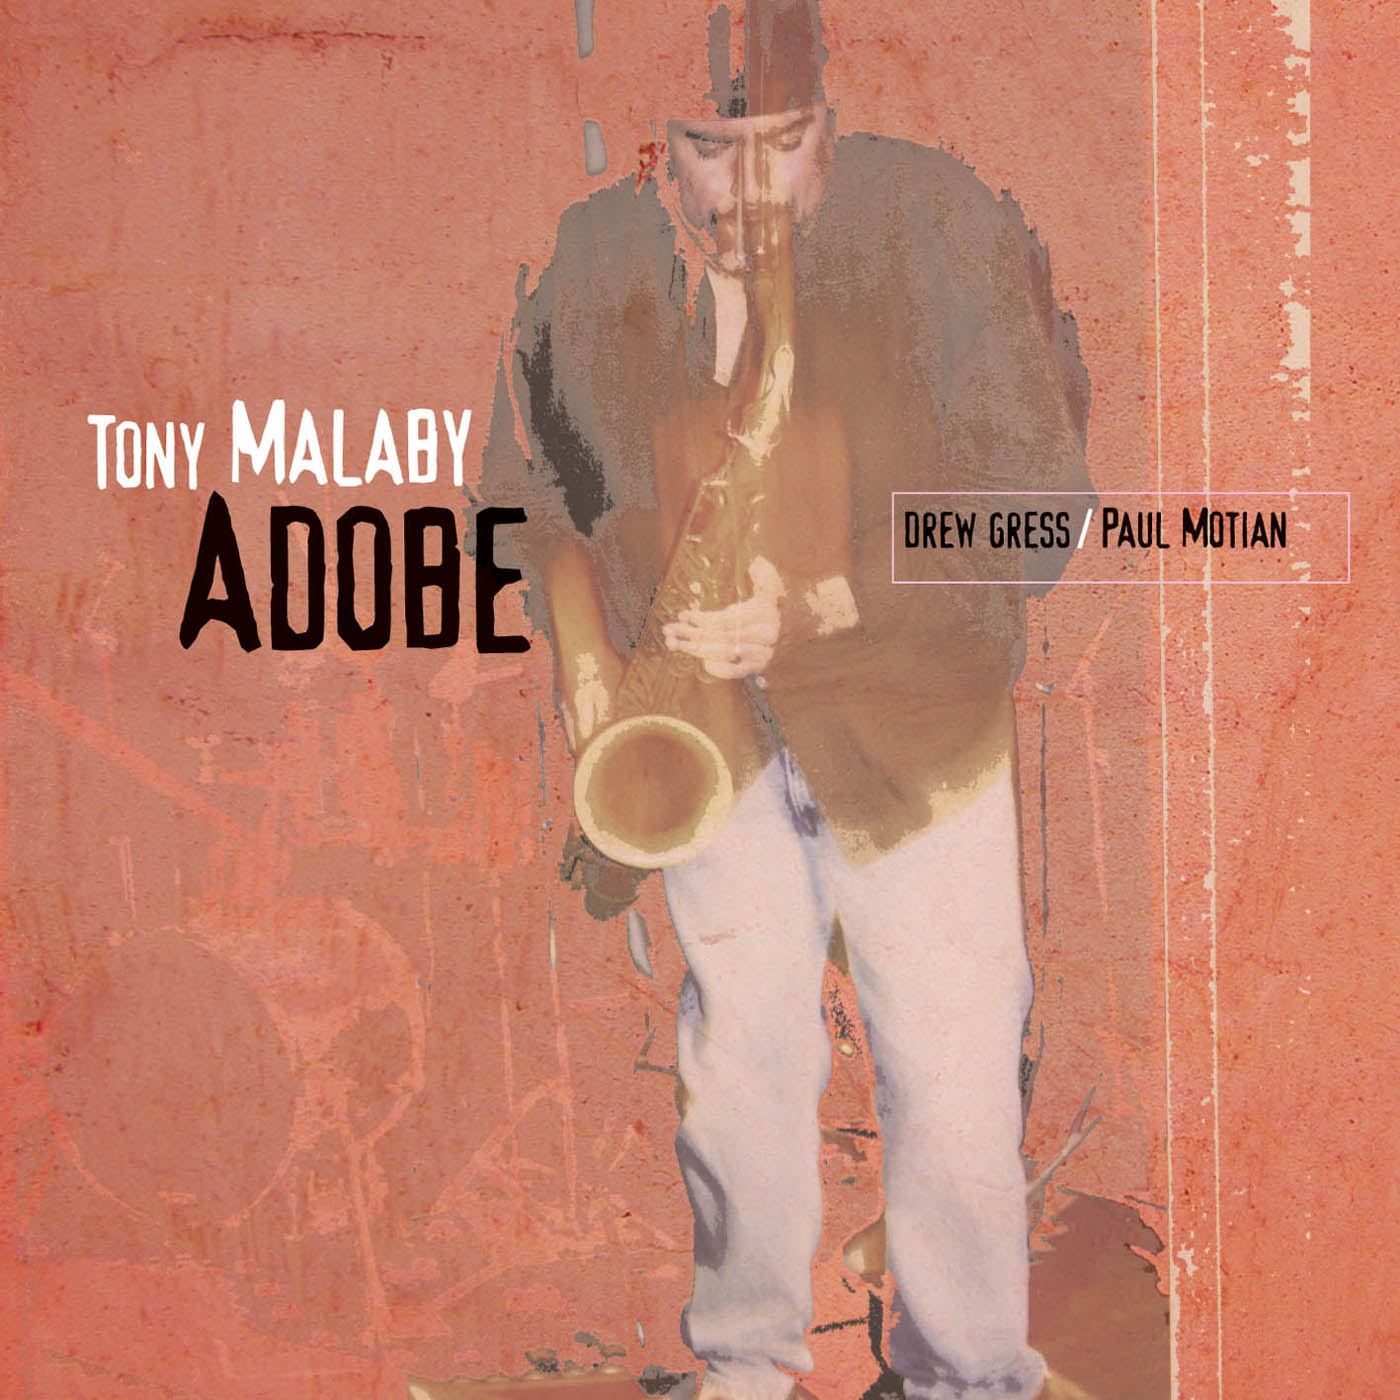 Adobe by Tony Malaby cover